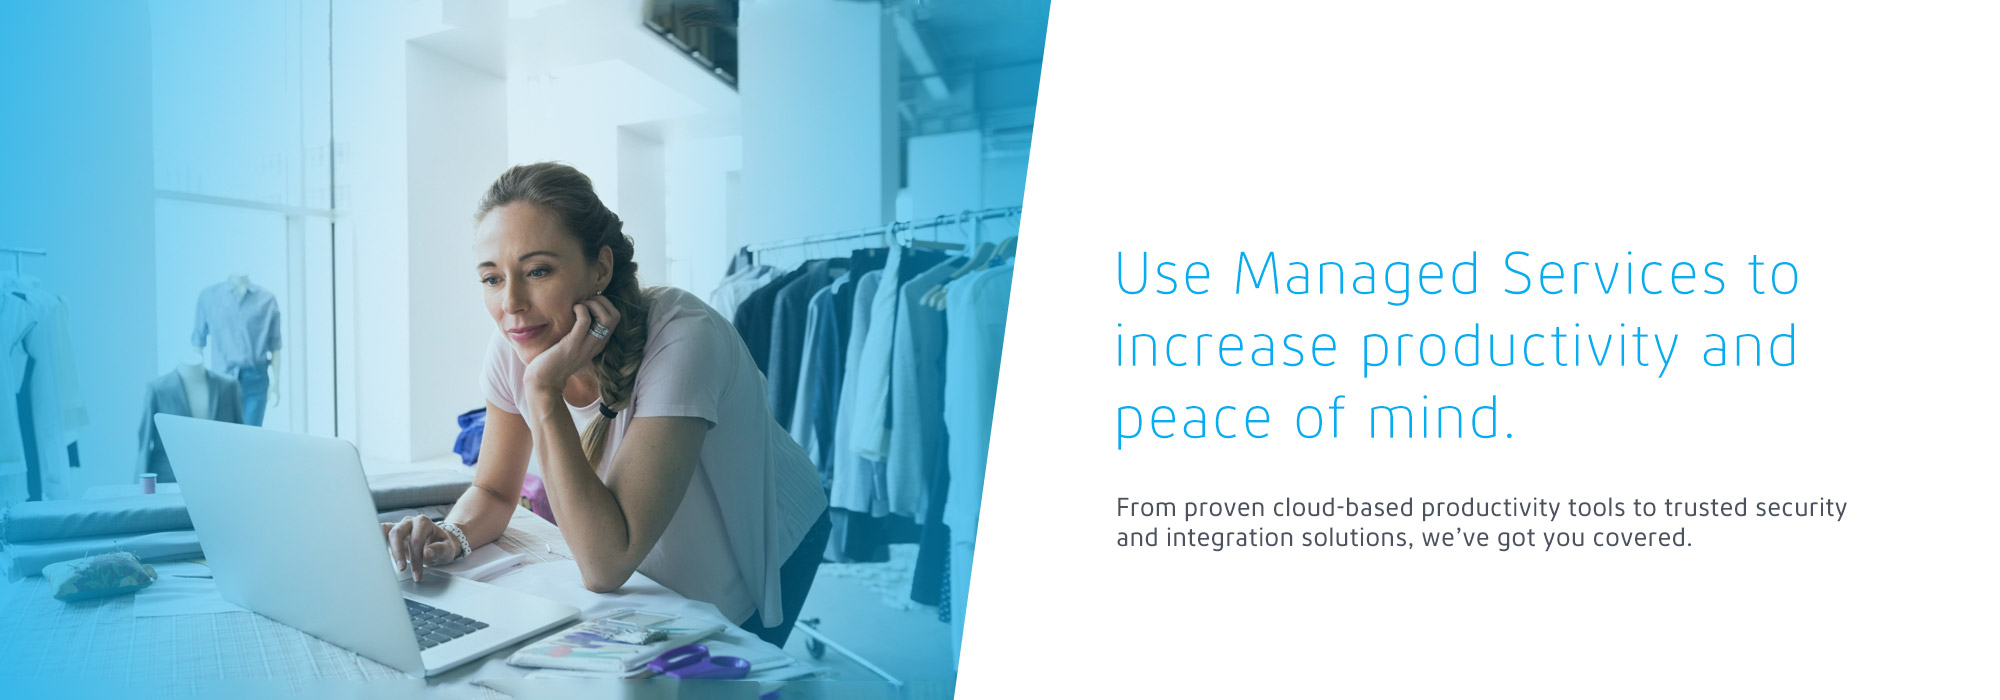 Be more productive with Cogeco Managed Services. From the best cloud-based productivity tools on the market to trusted security and integration solutions, we've got you covered.